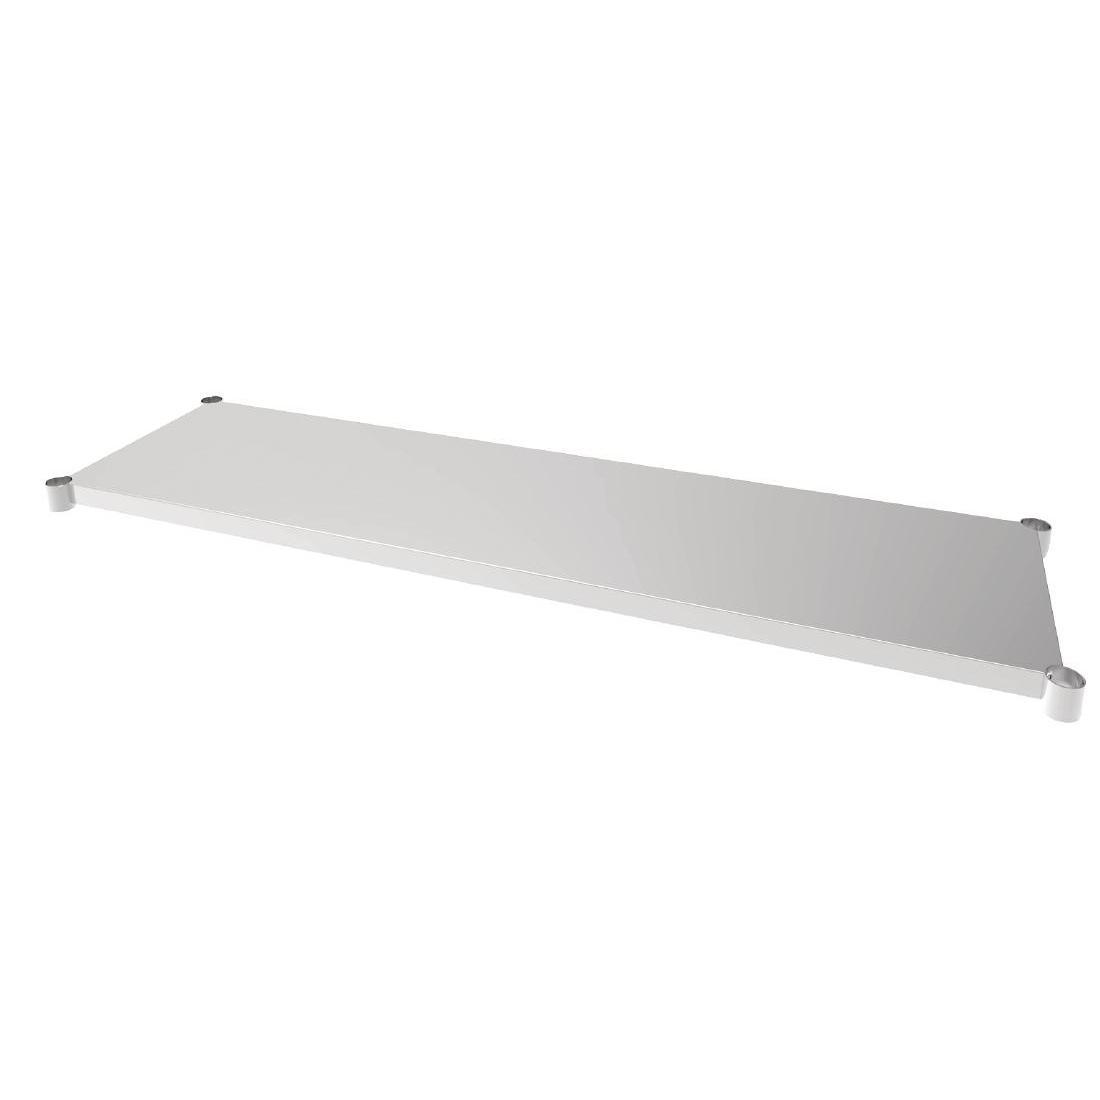 Vogue Stainless Steel Table Shelf 600x1800mm - Each - CP834